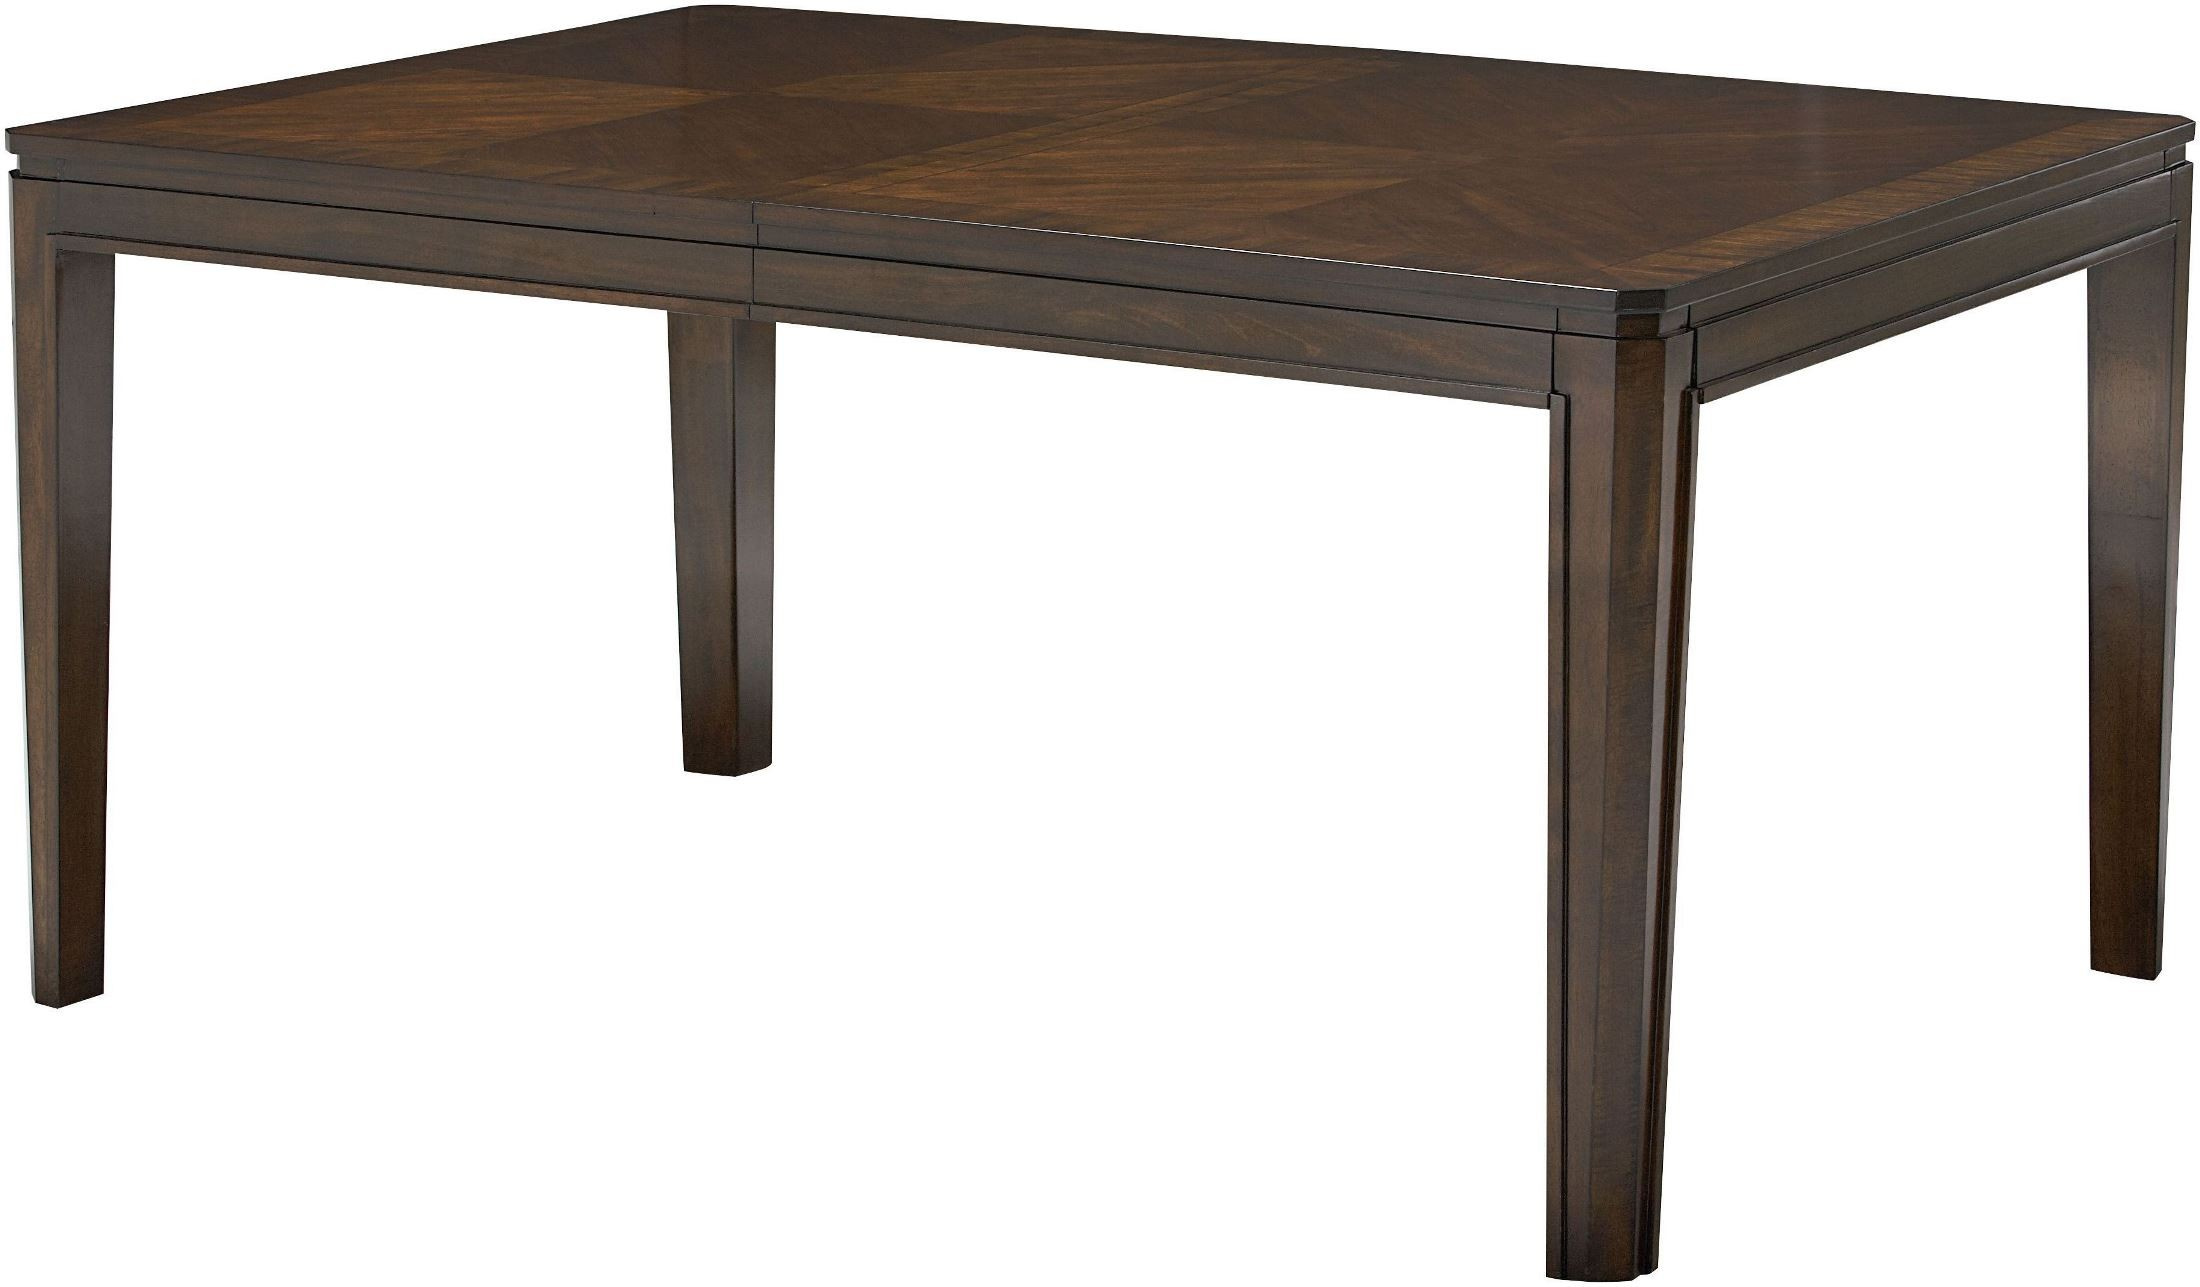 Avion Walnut Extendable Leg Dining Table From Standard